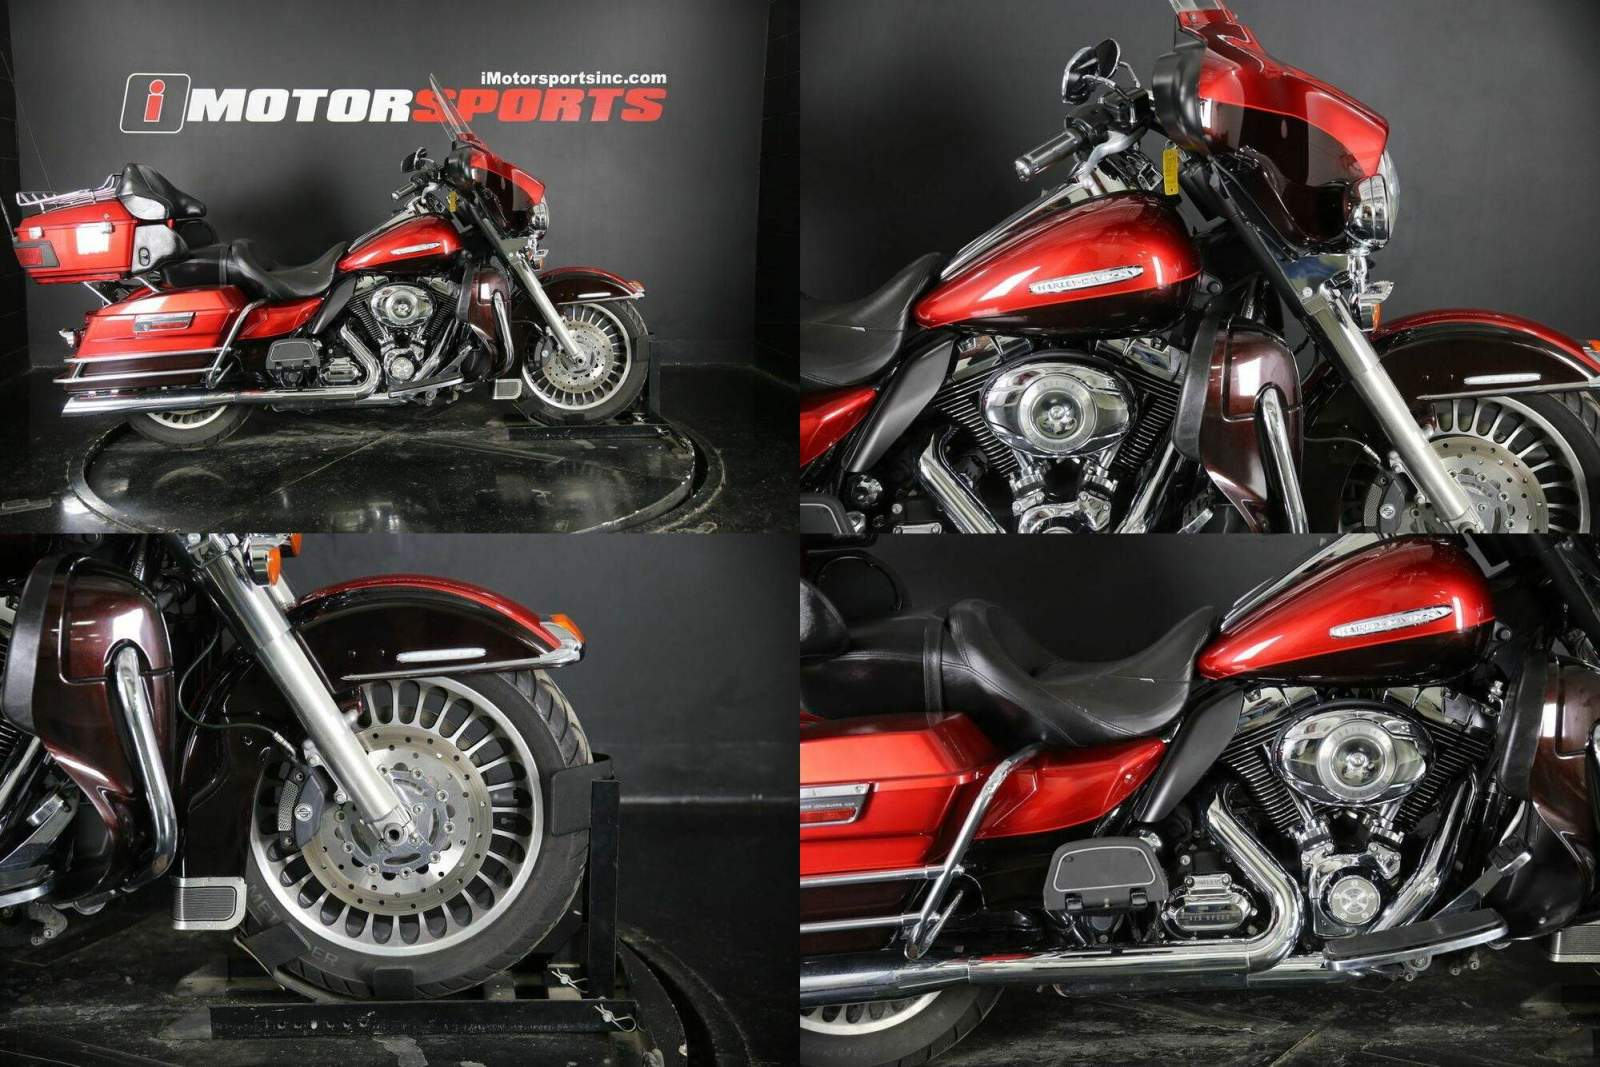 2011 Harley-Davidson FLHTCU - Ultra Classic Electra Glide Red used for sale